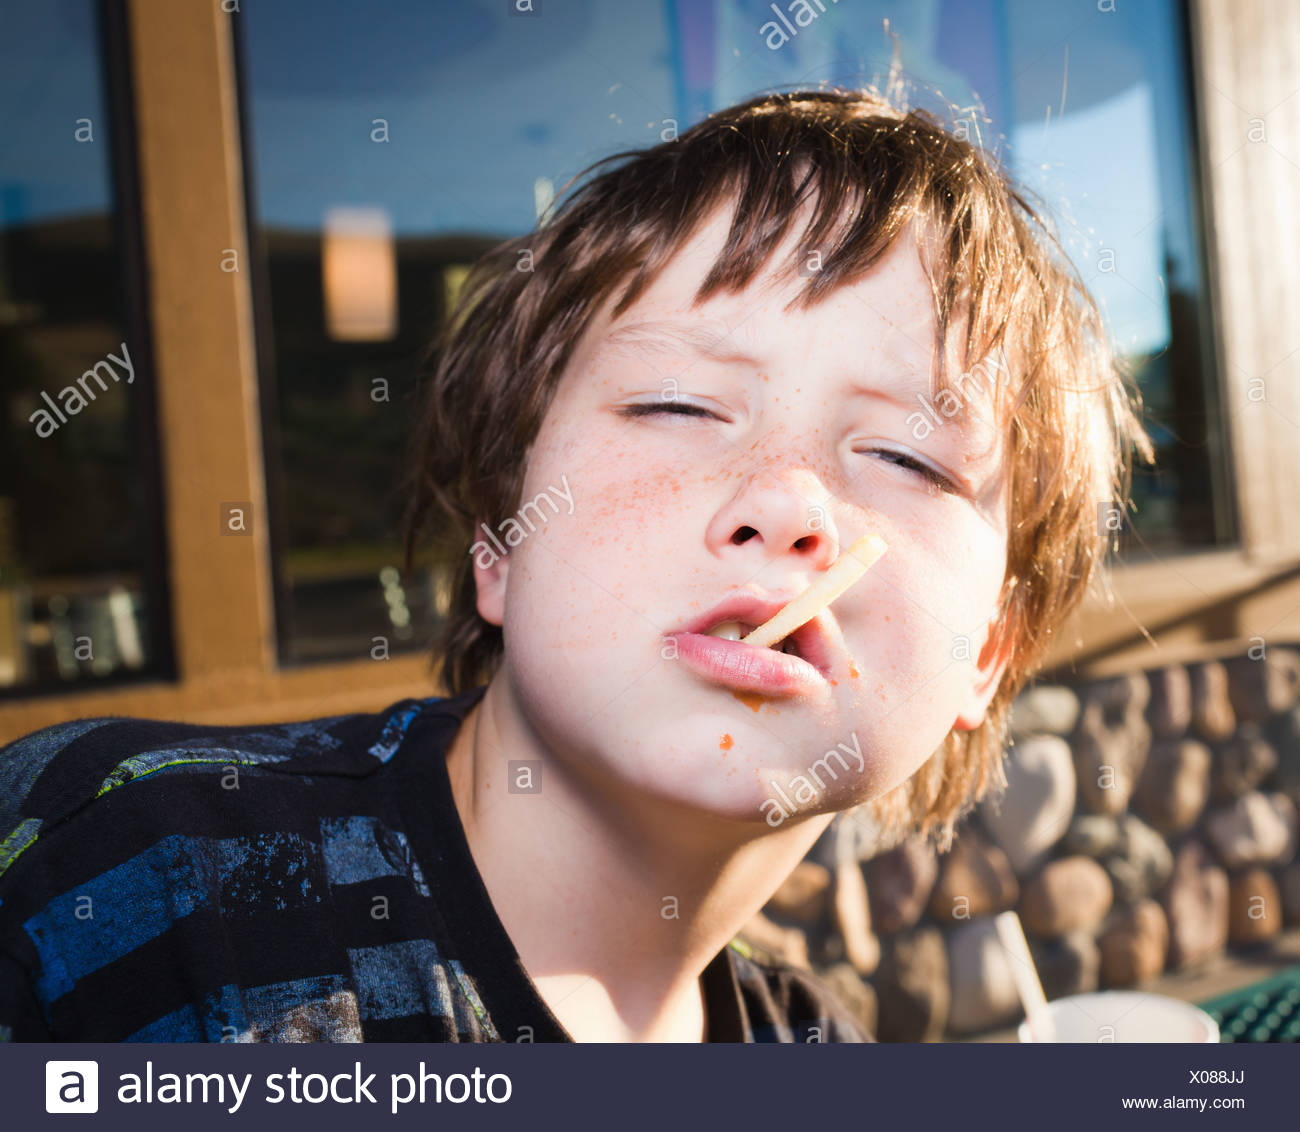 Boy being defiant with junk food - Stock Image